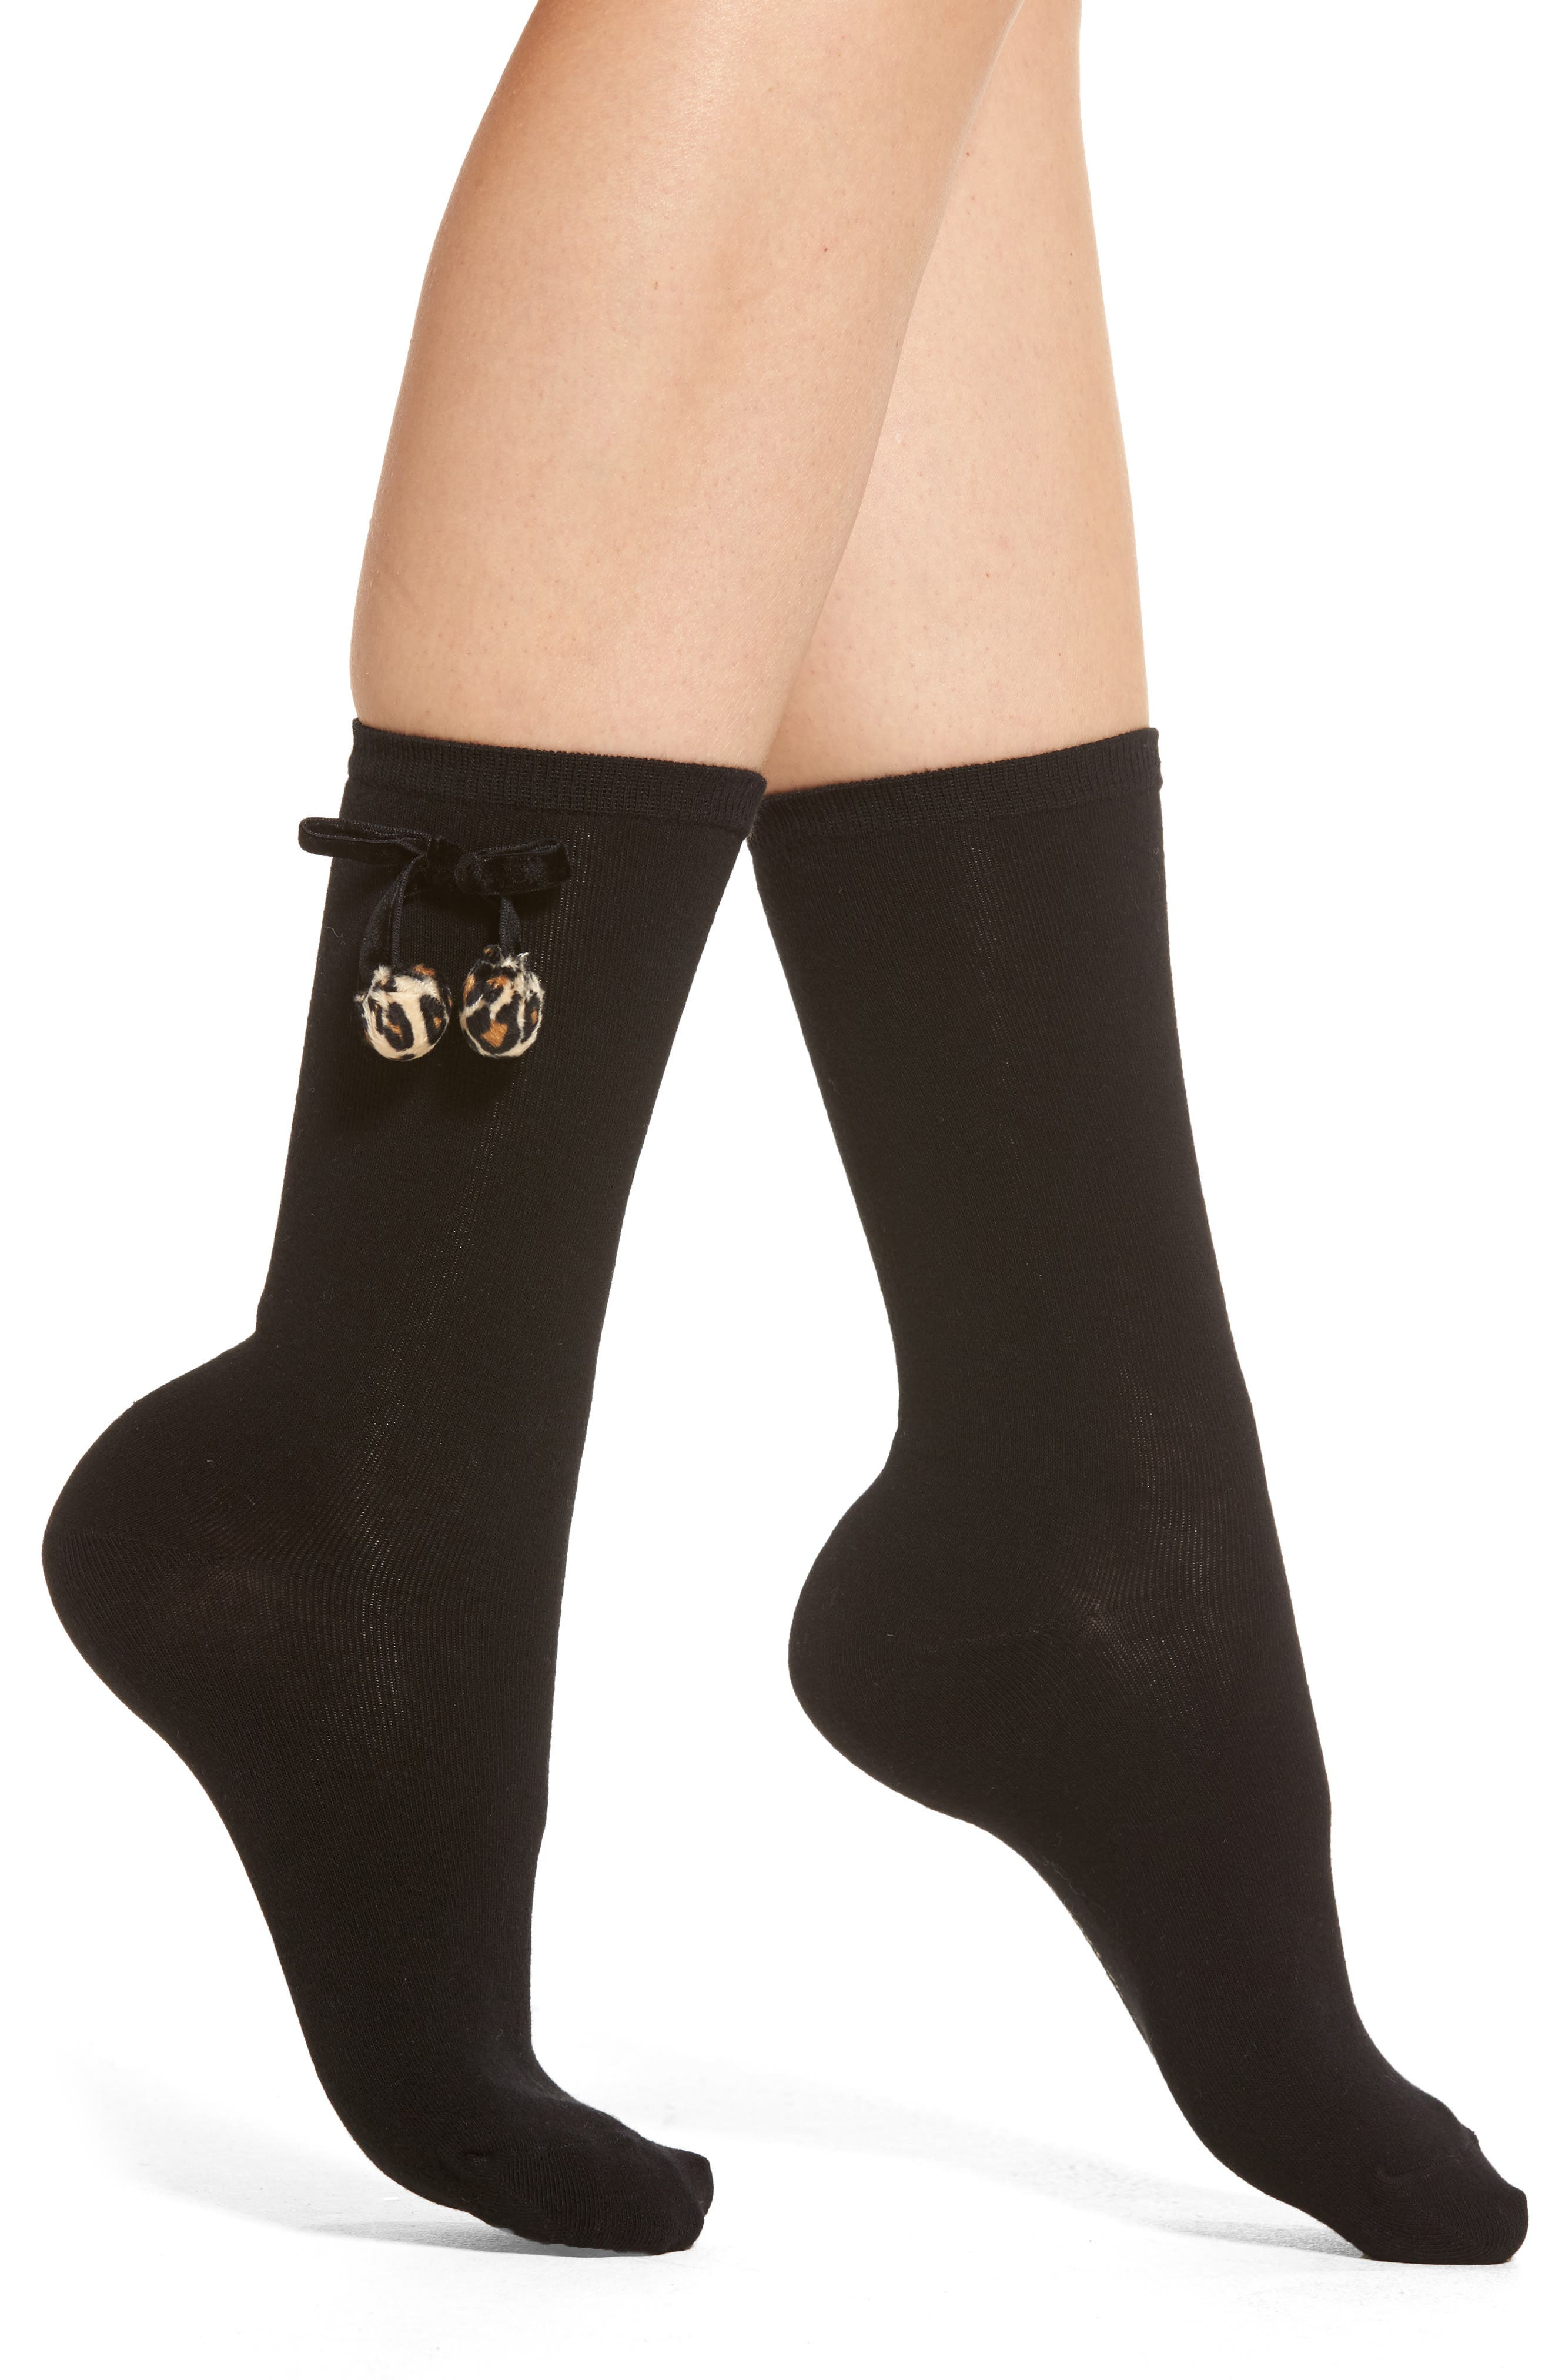 Alternate Image 1 Selected - kate spade new york crew socks (3 for $24.00)